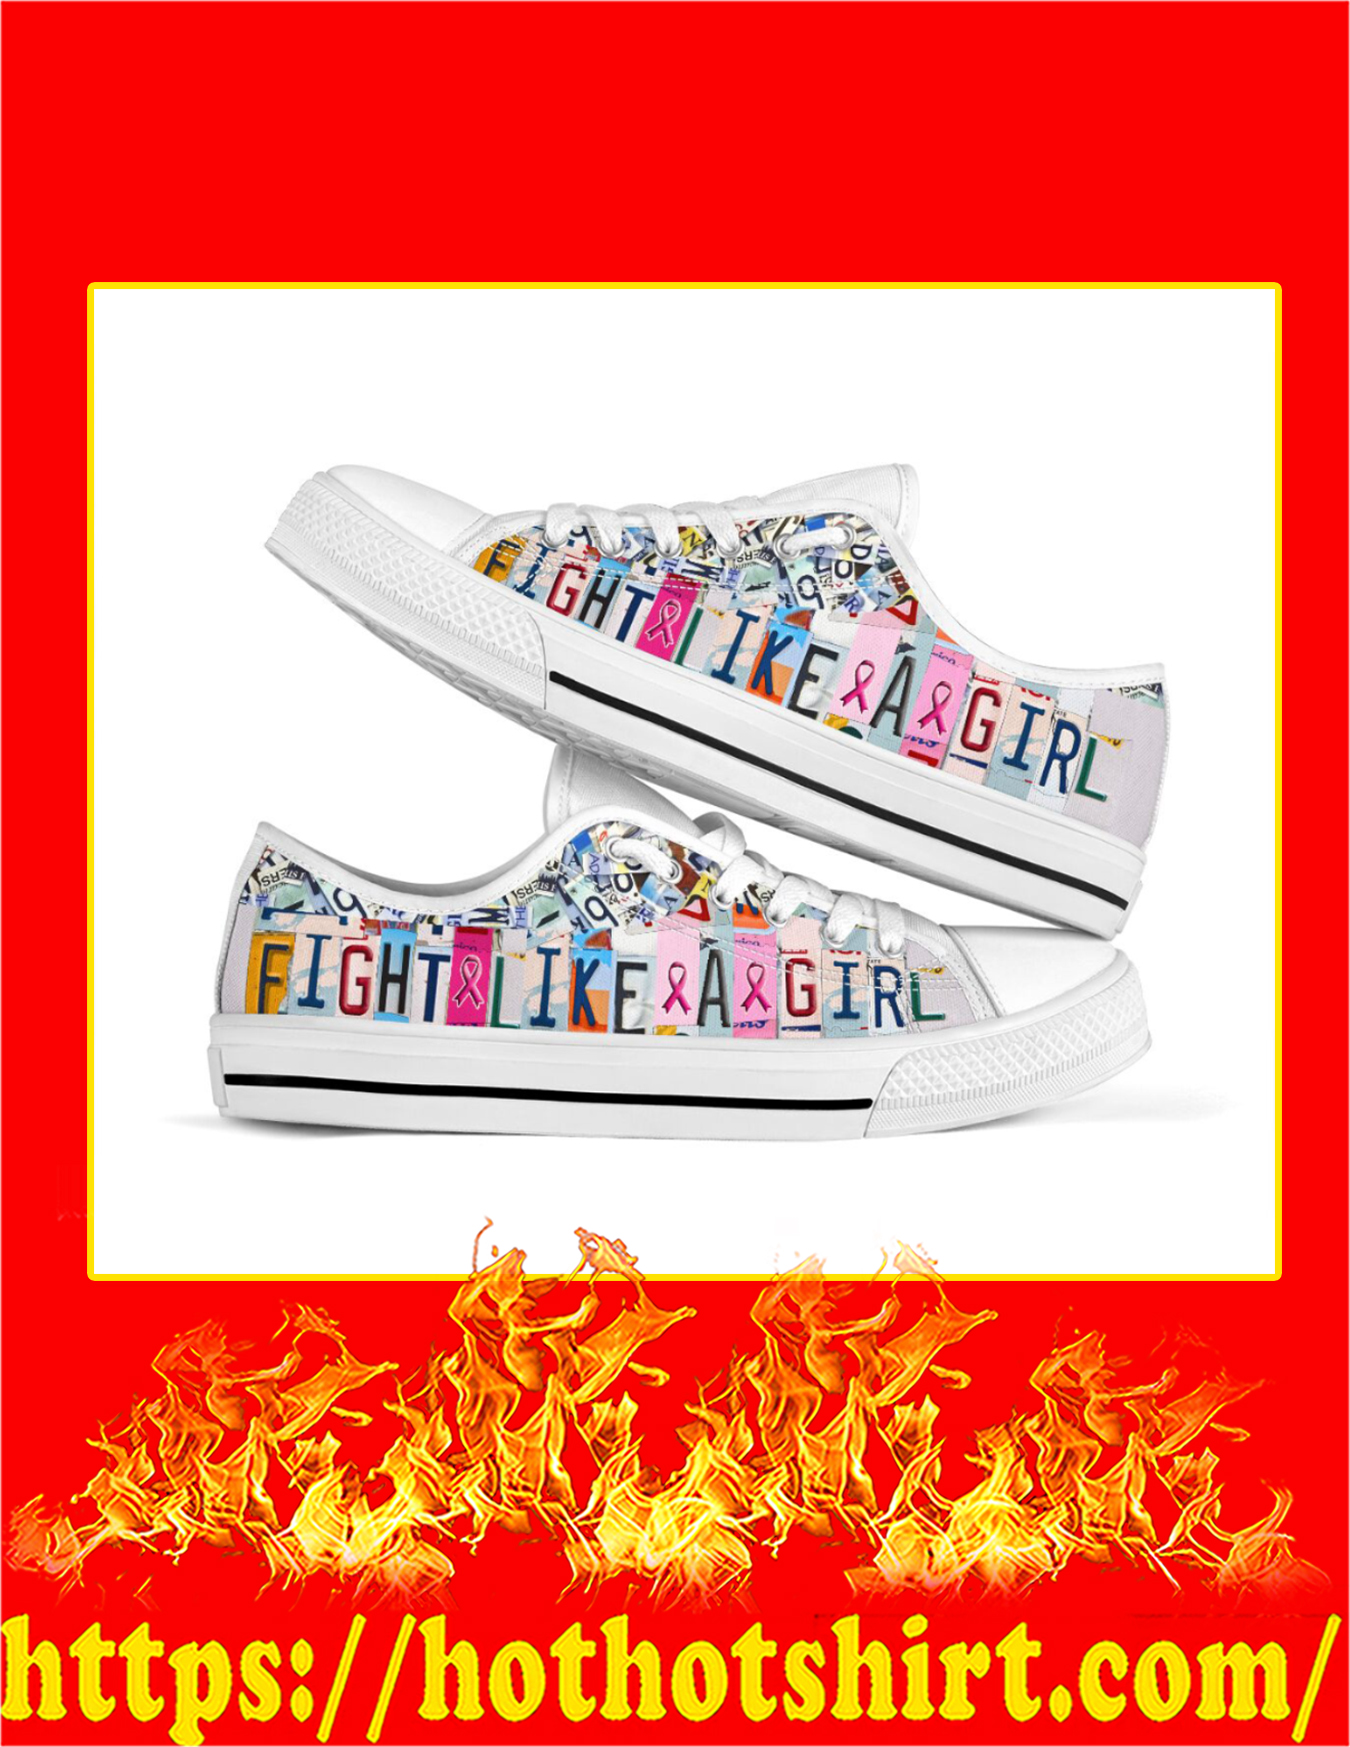 Fight Like A Girl Breast Cancer Low Top Shoes - Pic 1